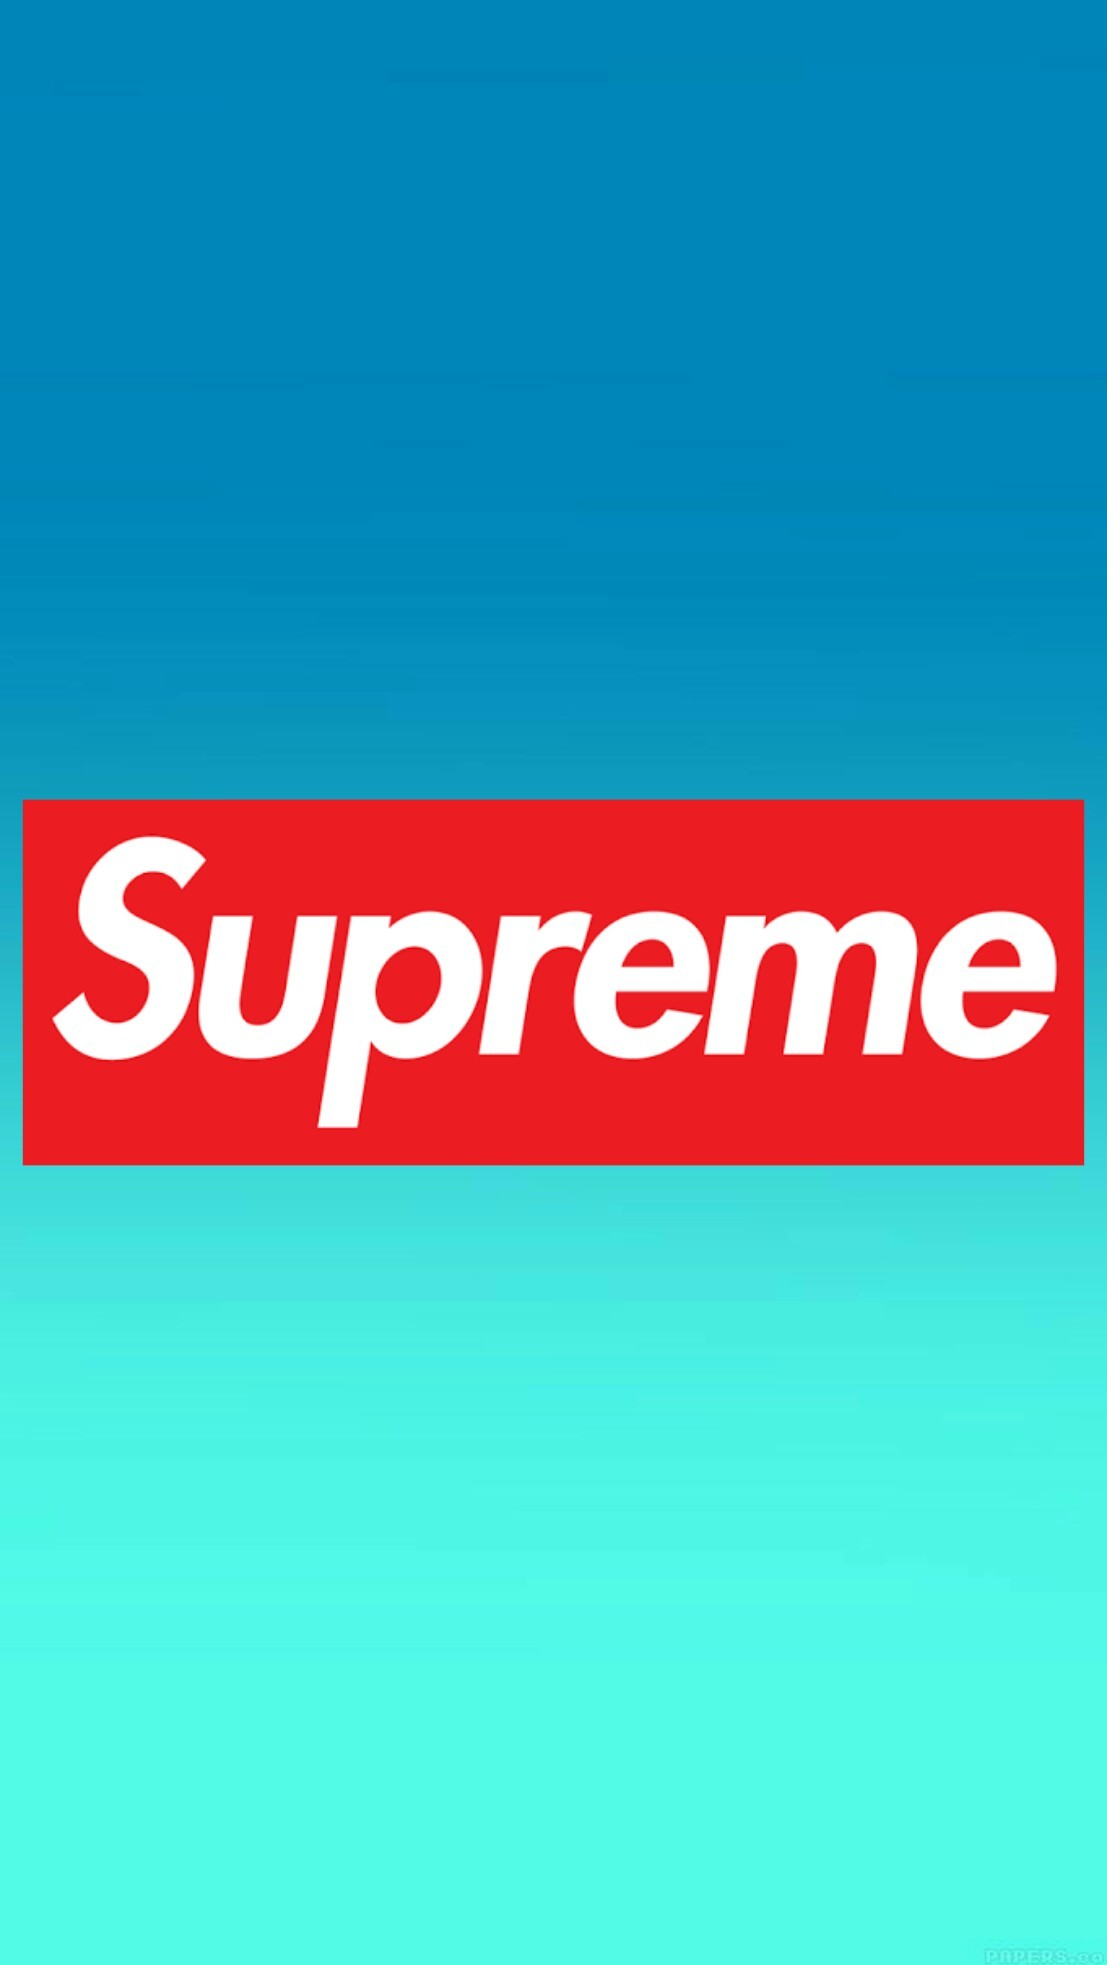 Supreme Wallpaper 73 images 1107x1965